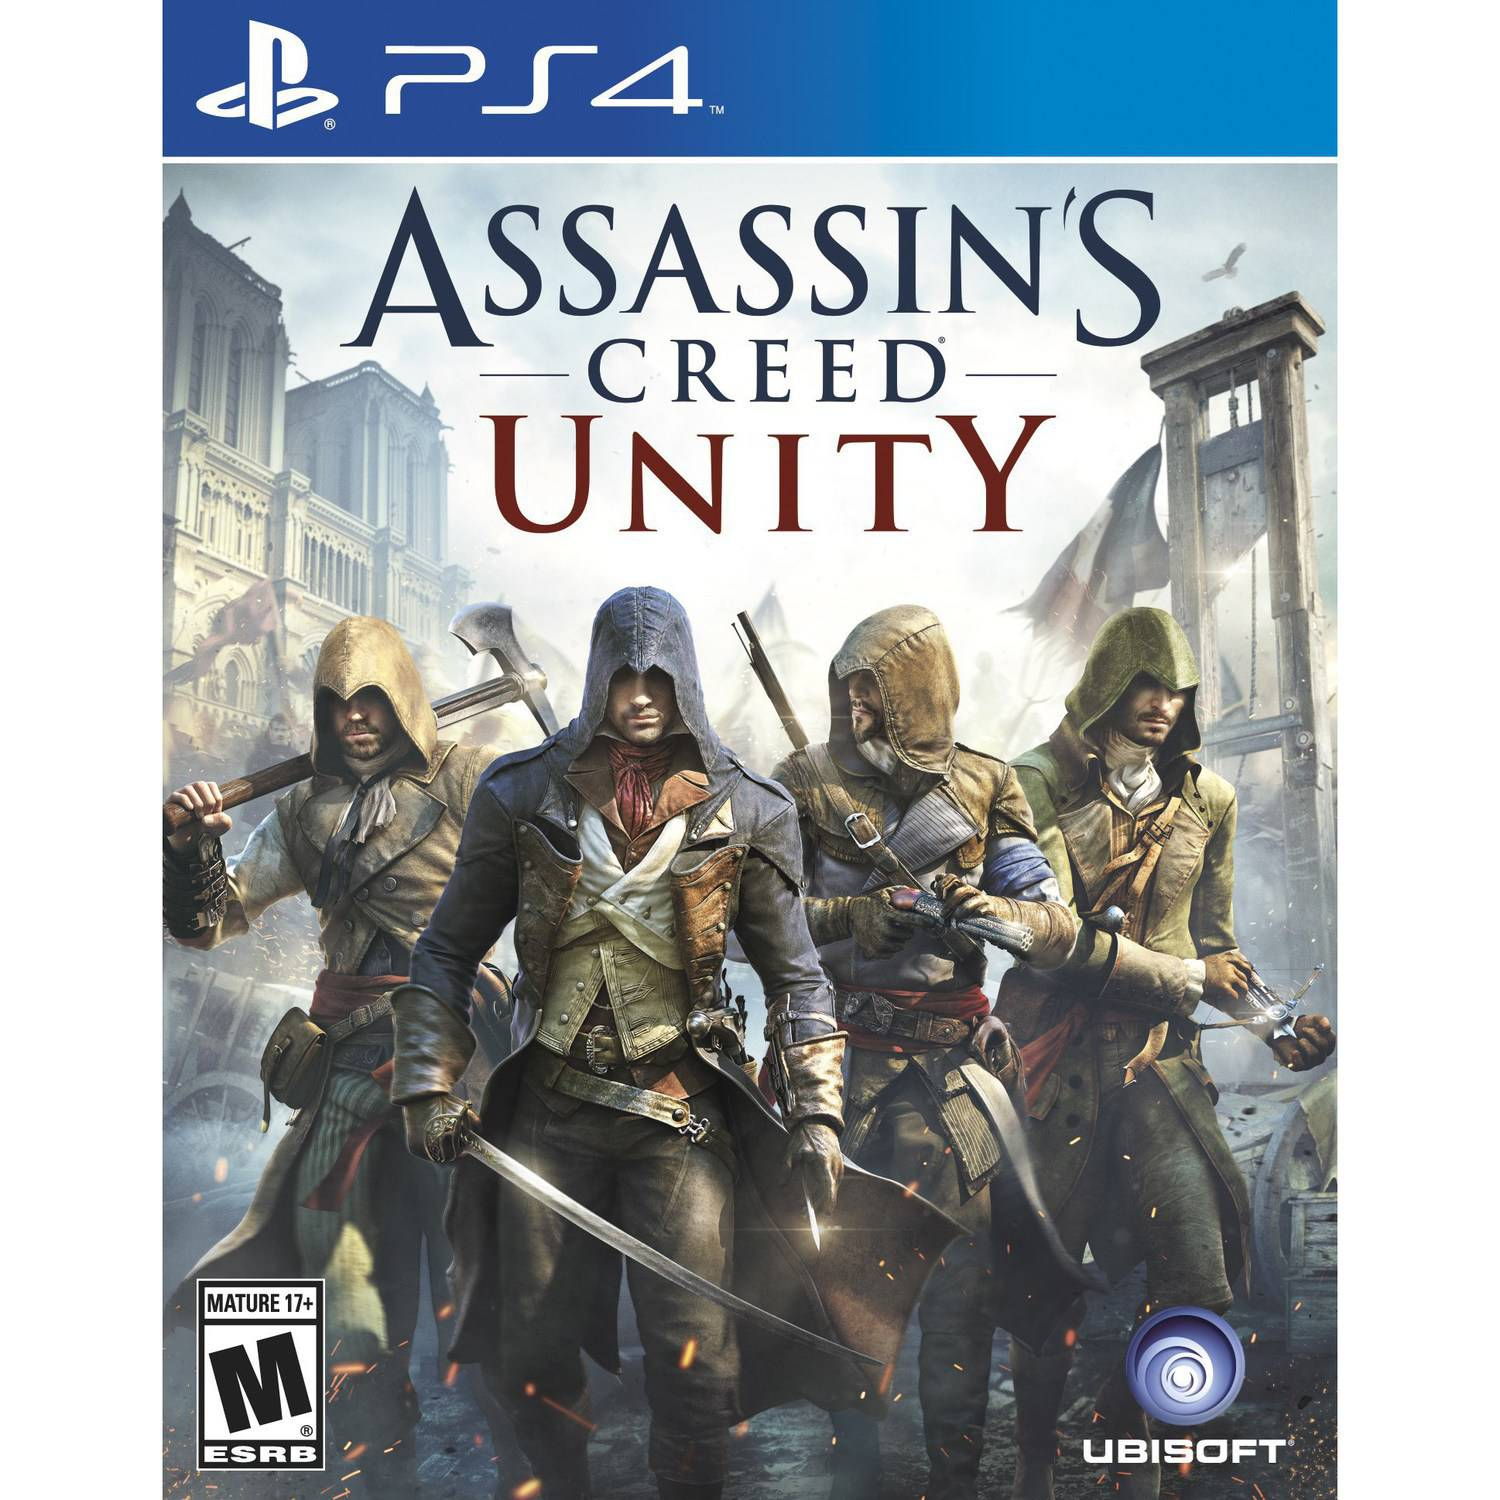 Assassin's Creed: Unity (Playstation 4) by Ubisoft Montreal